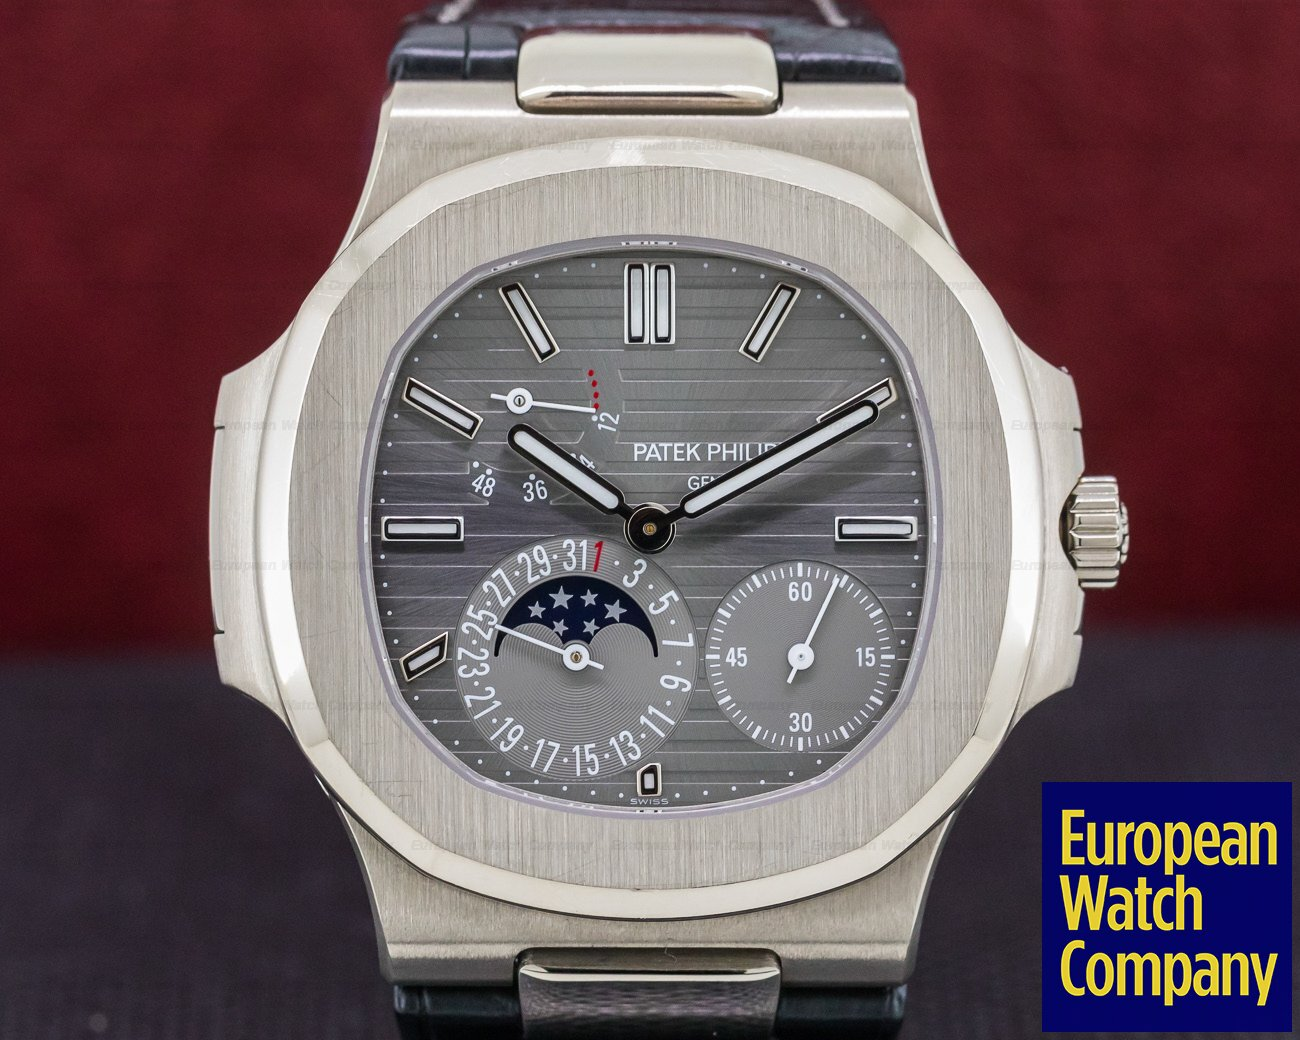 Patek Philippe 5712G-001 Nautilus Power Reserve Moonphase 18K White Gold